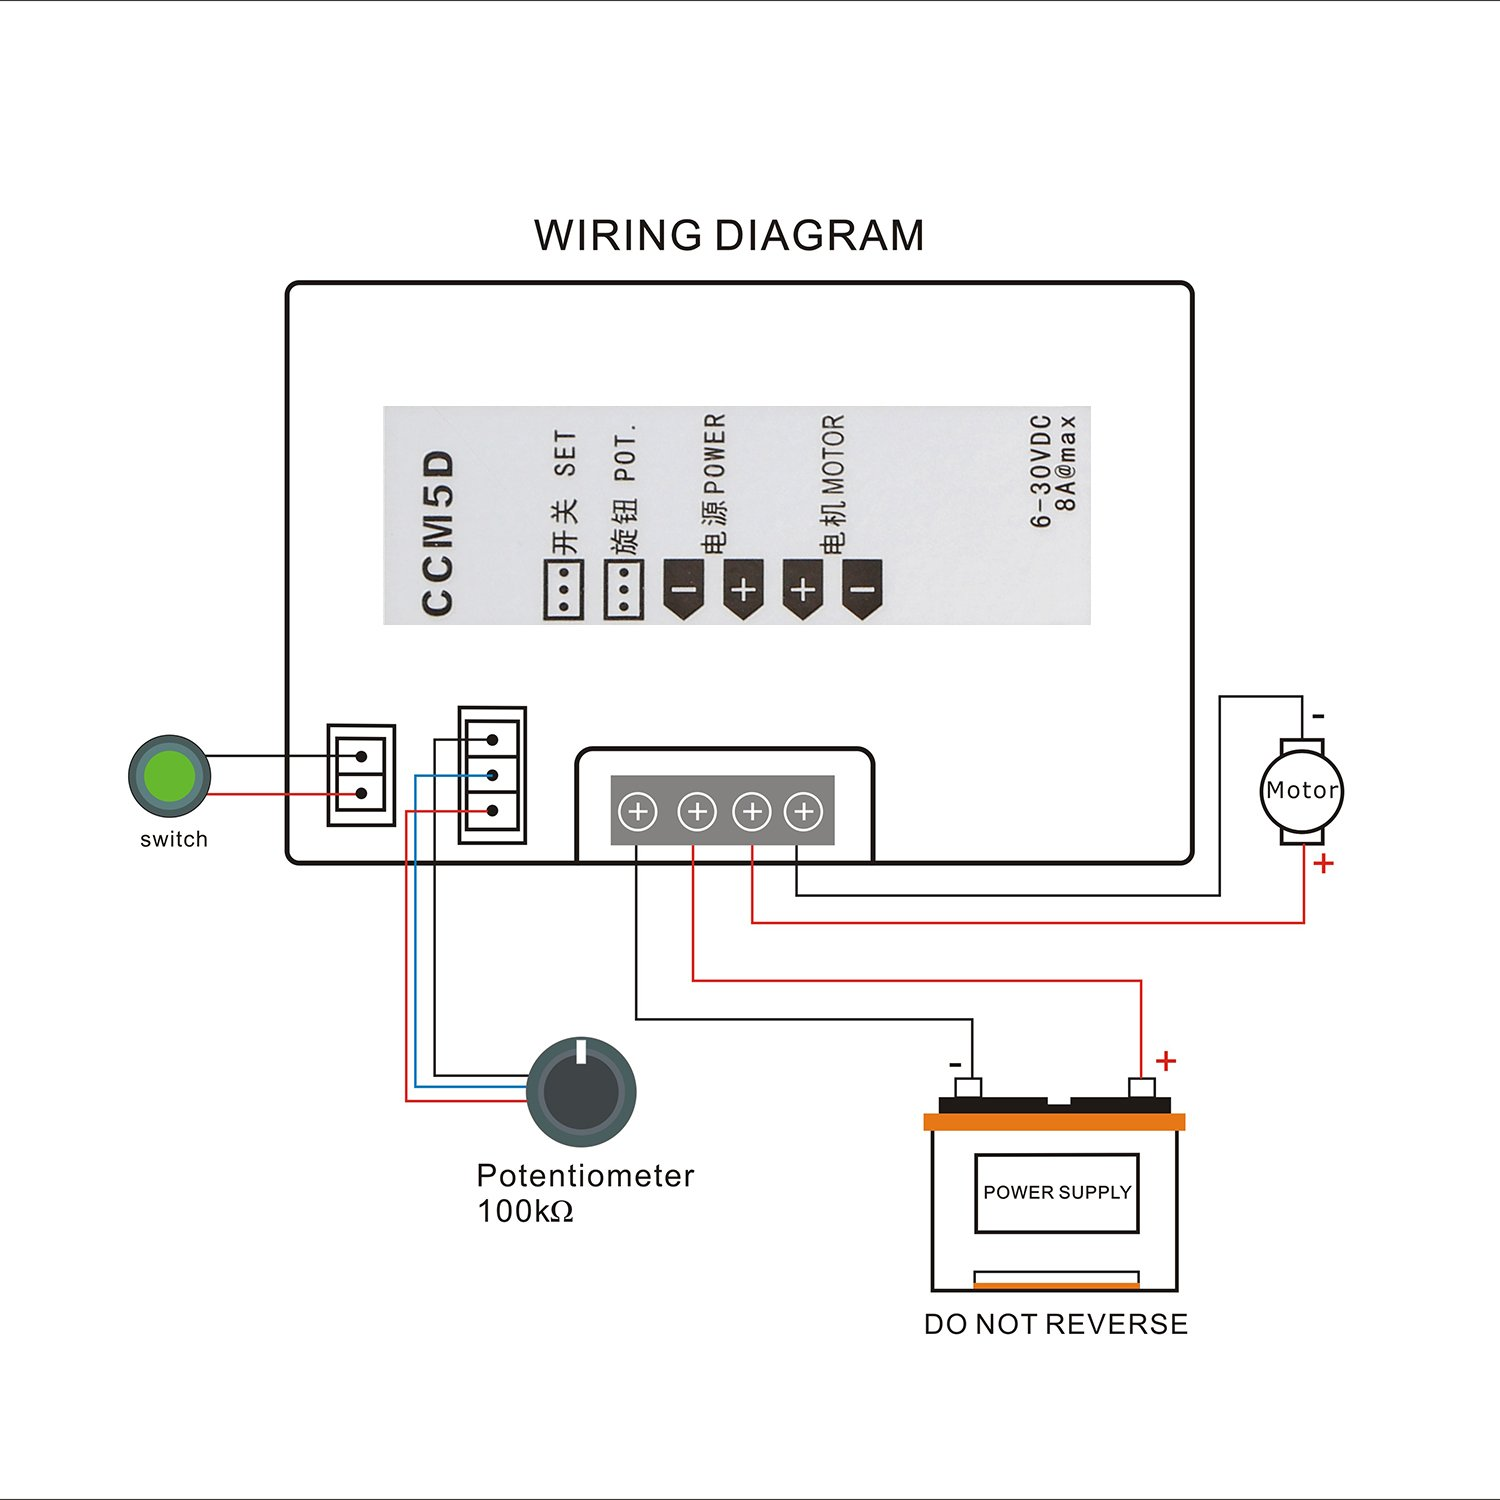 wiring a potentiometer for motor a free printable wiring diagrams